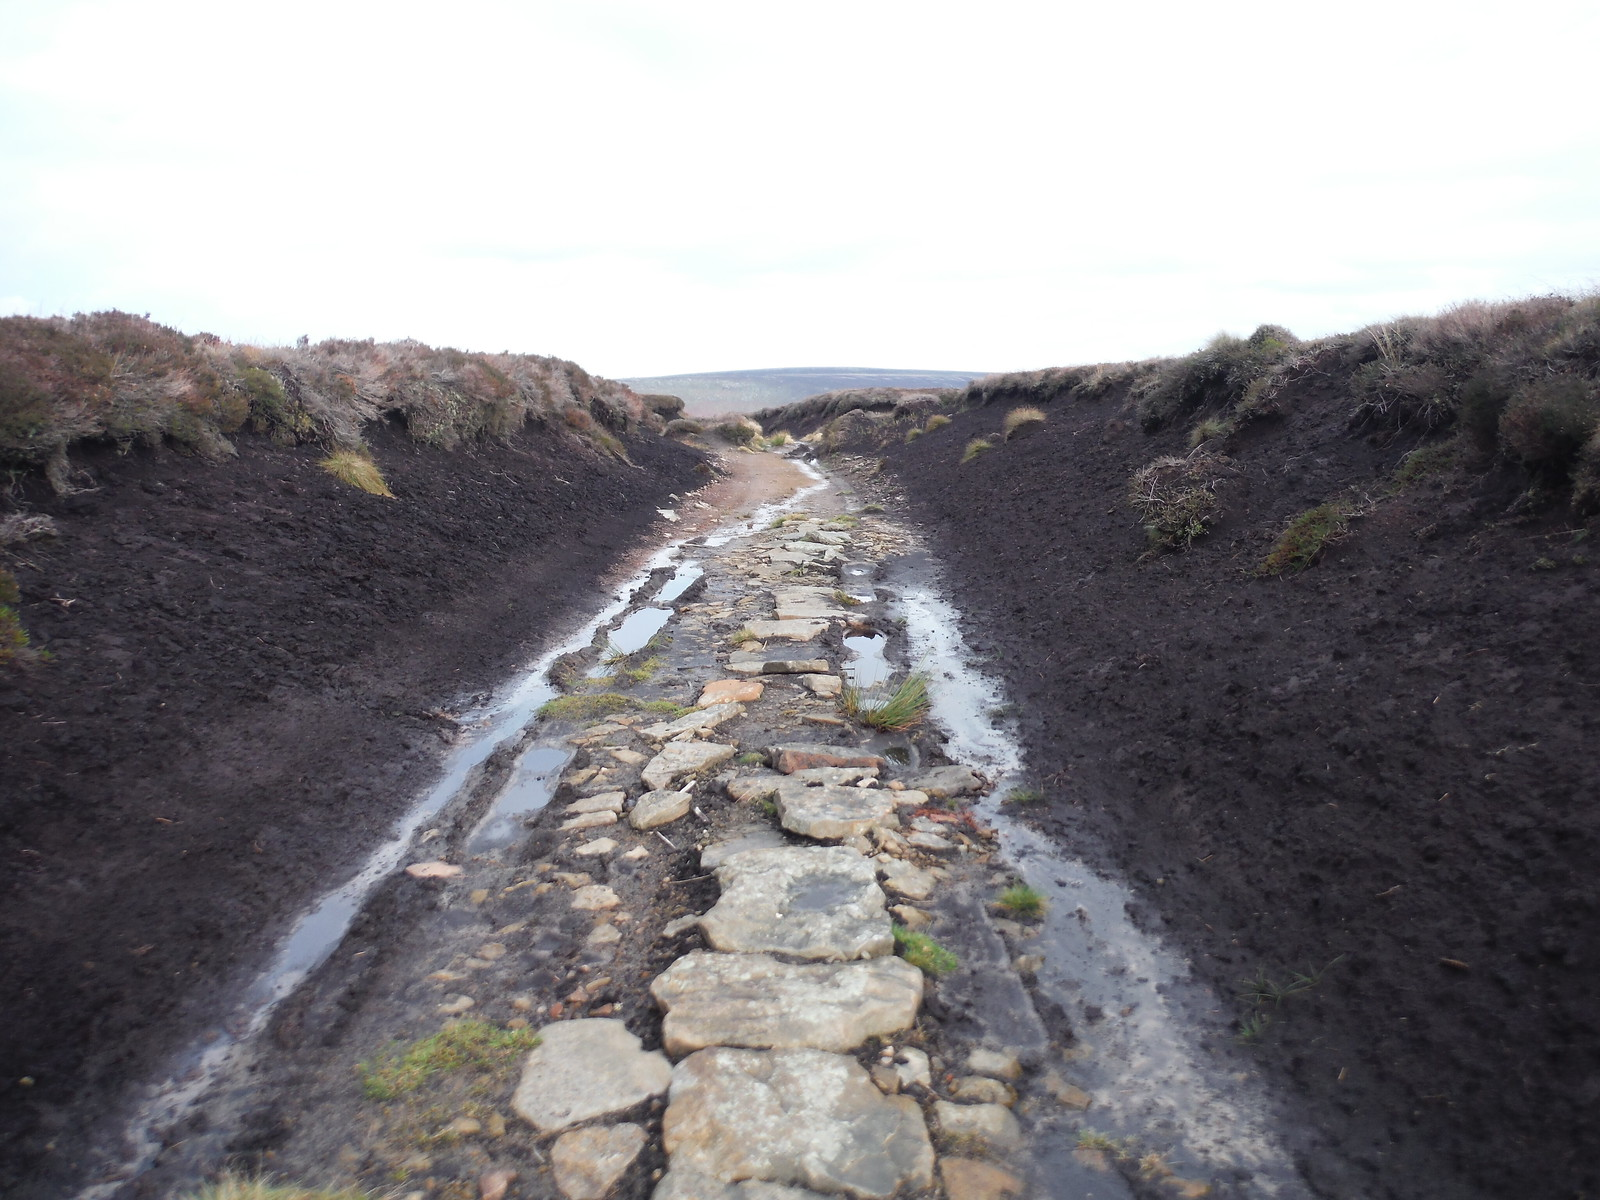 Track deeply cut between Peat Banks, Ridgewalk Moor SWC Walk 350 - Fairholmes Circular (via Bleaklow and Derwent Head) [Grinah Stones and Westend Valley Ending]